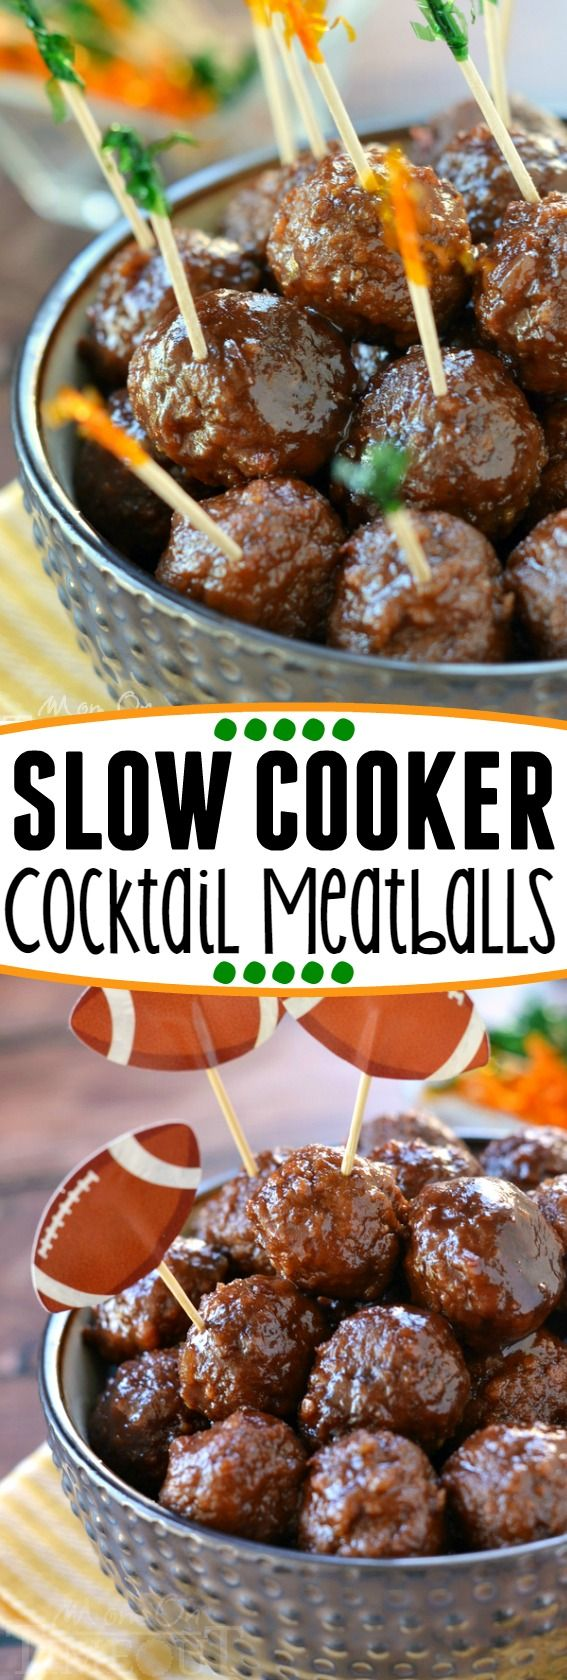 These Slow Cooker Cocktail Meatballs are made with just three ingredients! Guaranteed to be a hit at your next party! You're going to love this super easy appetizer recipe - we make them all the time!